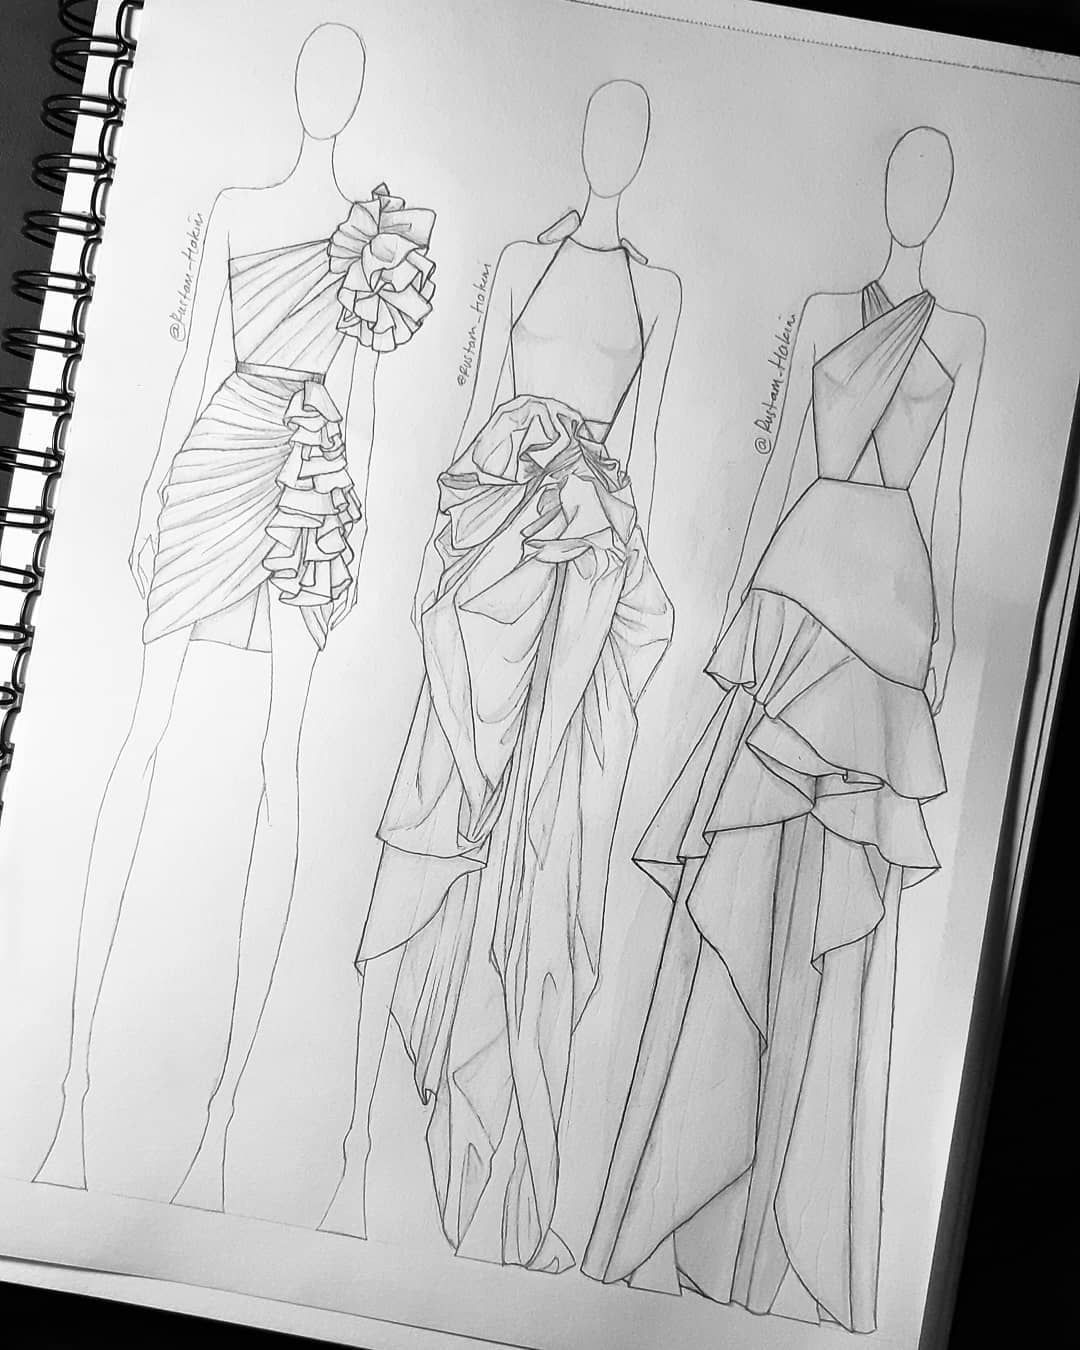 Kim On Instagram Still Obsessed With Frills And Ruffles S Illustration Fashion Design Fashion Illustration Sketches Dresses Fashion Design Sketchbook